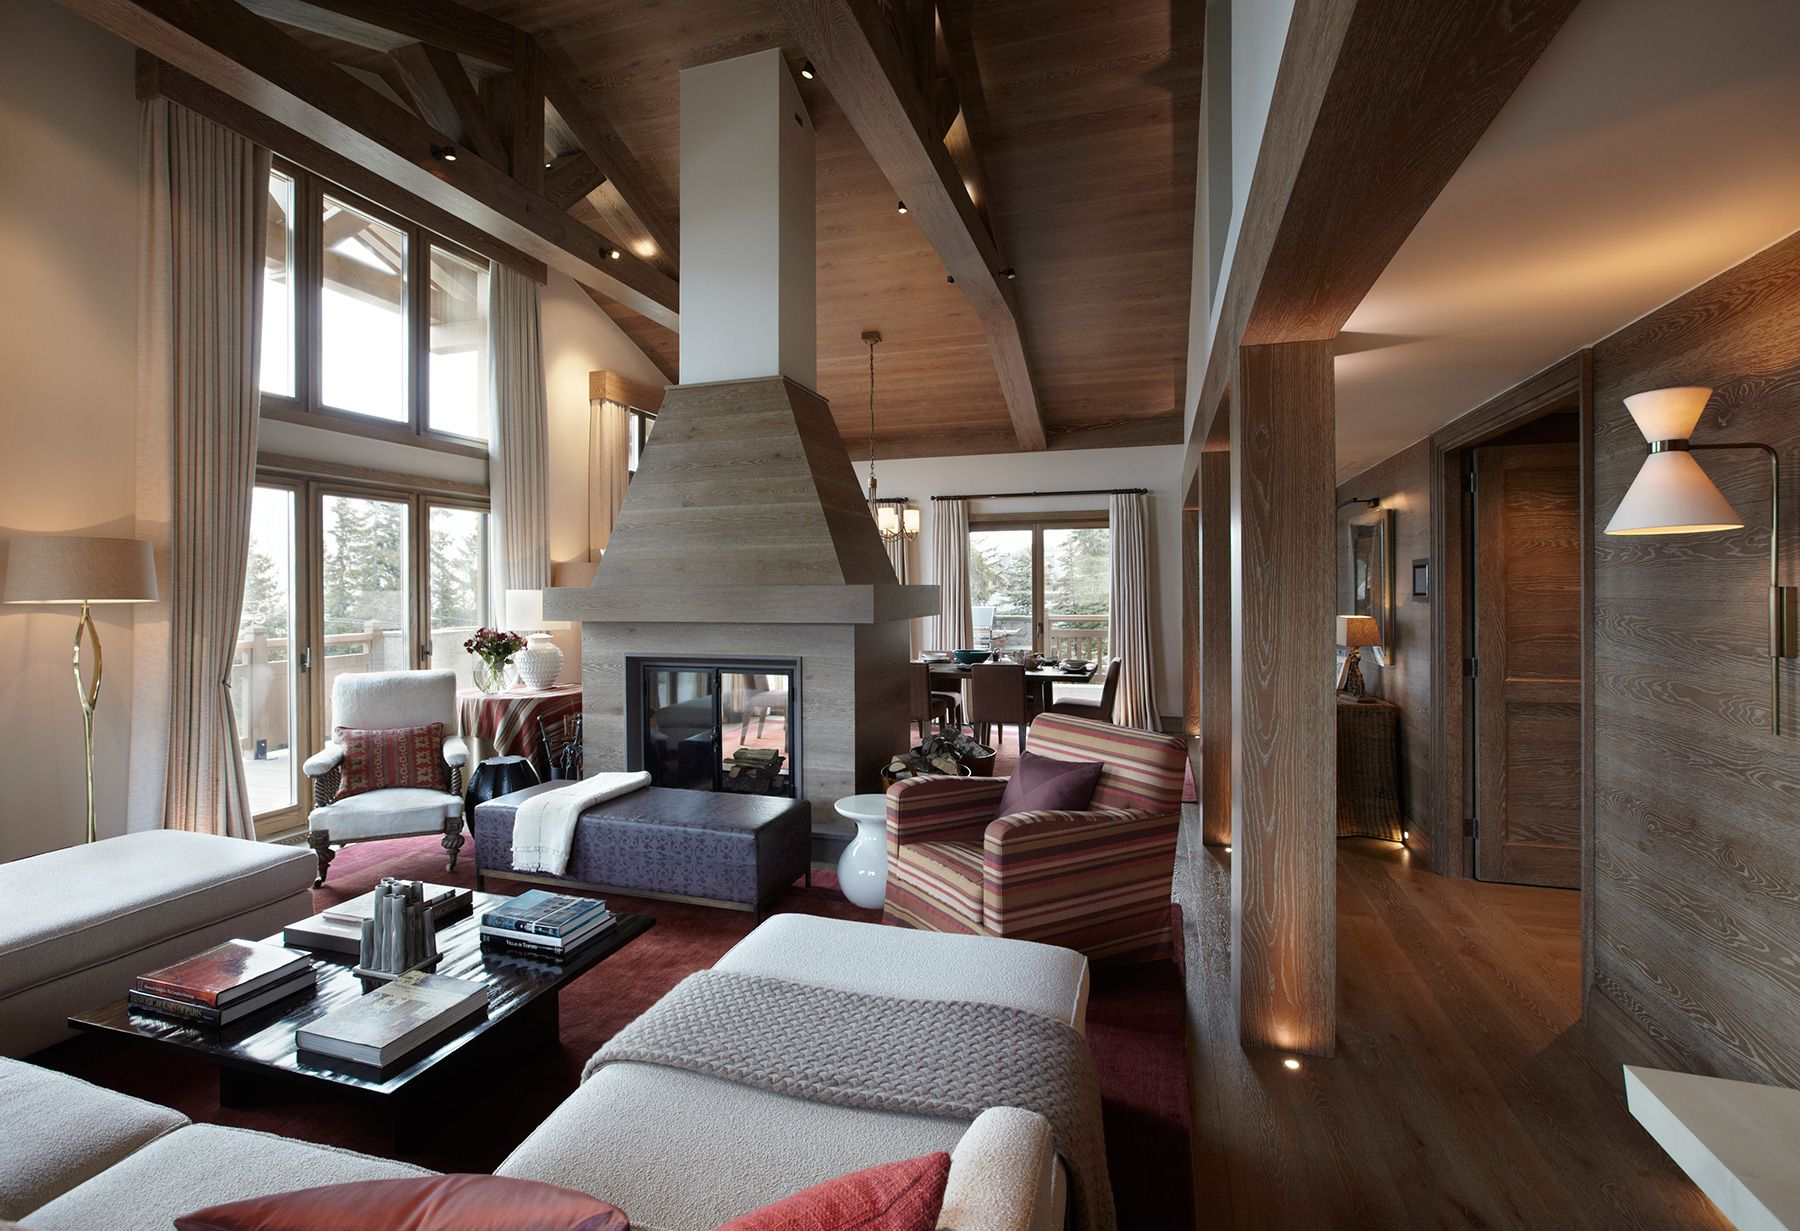 Great Chalet Brickell U2013 A Luxurious And Enchanting Alpine Getaway In Megève |  Eclectic Design, Amazing Houses And Architecture Design Good Looking